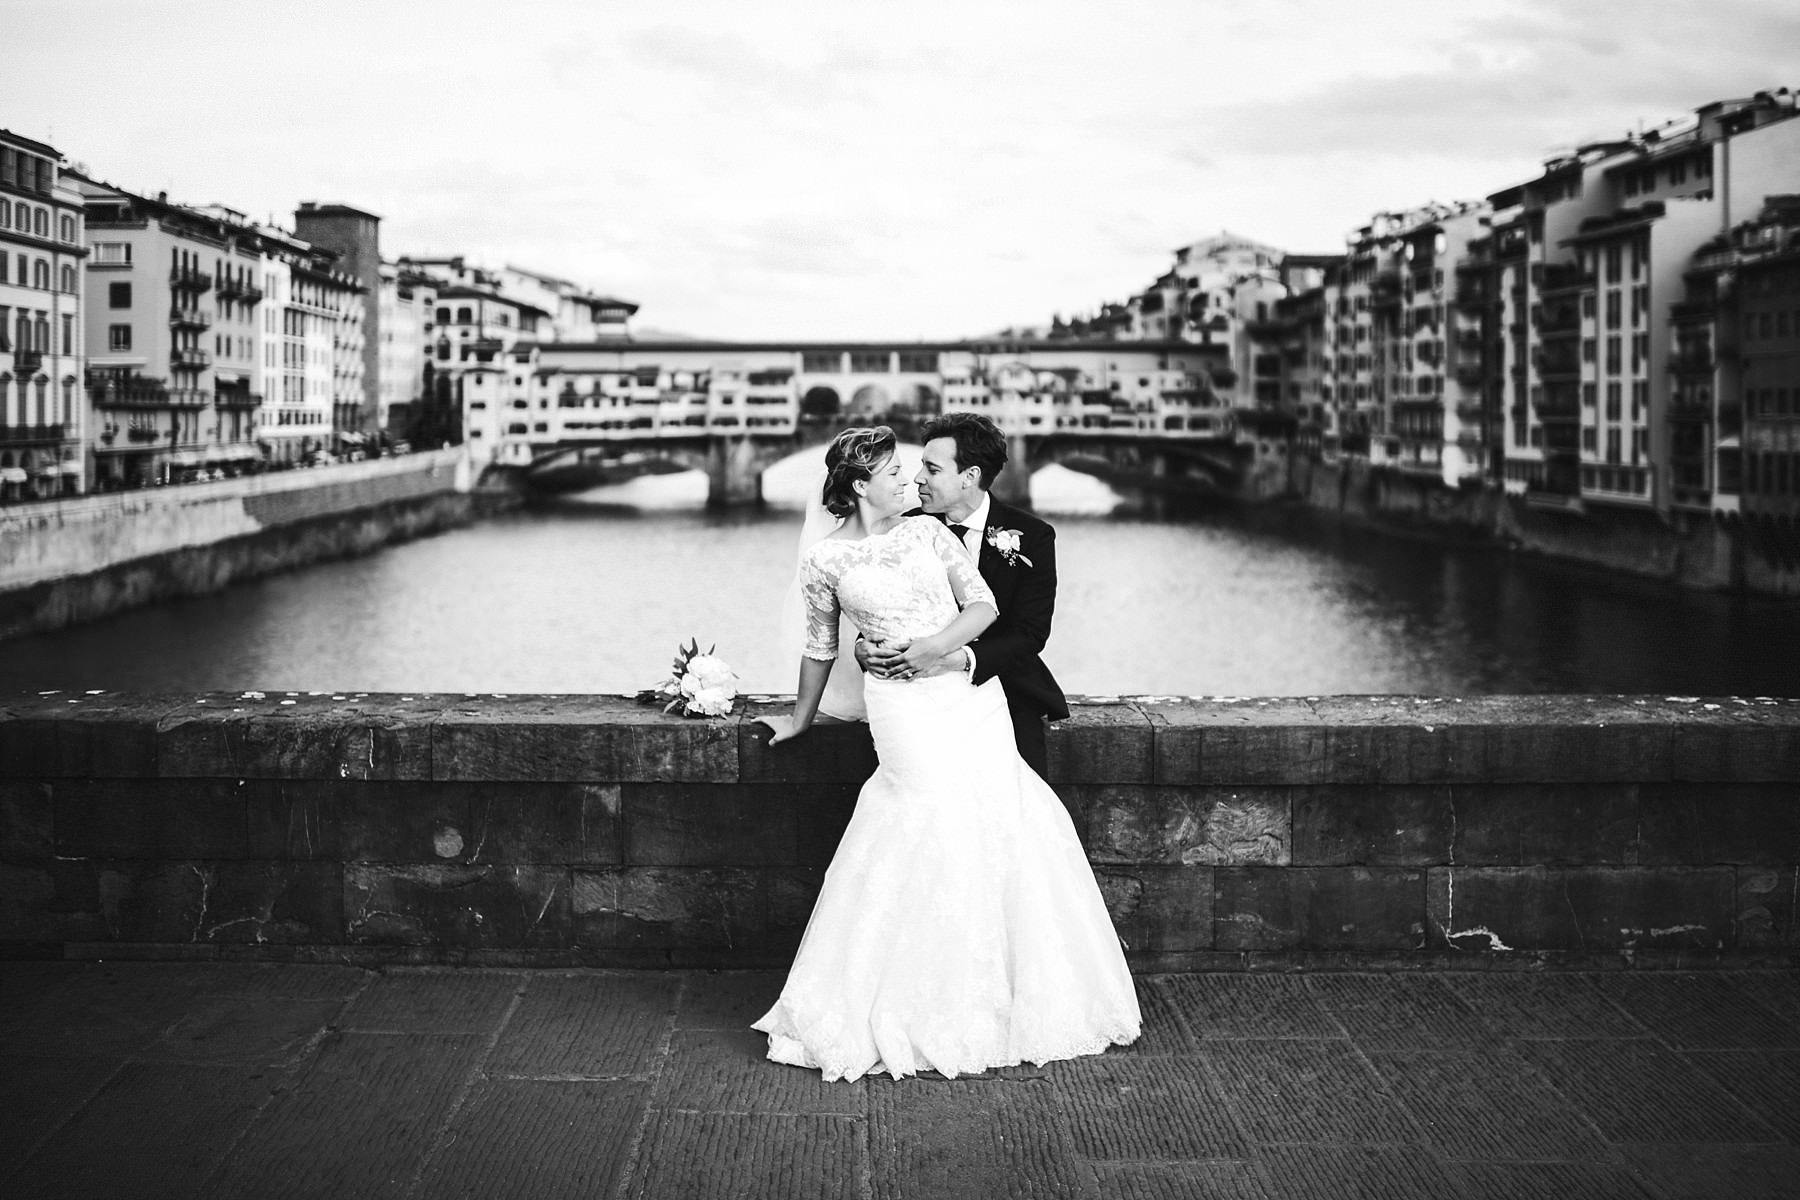 Lovely bride and groom wedding photo at Ponte Vecchio near Uffizi museum. Intimate and elegant destination wedding at luxury hotel St. Regis Florence